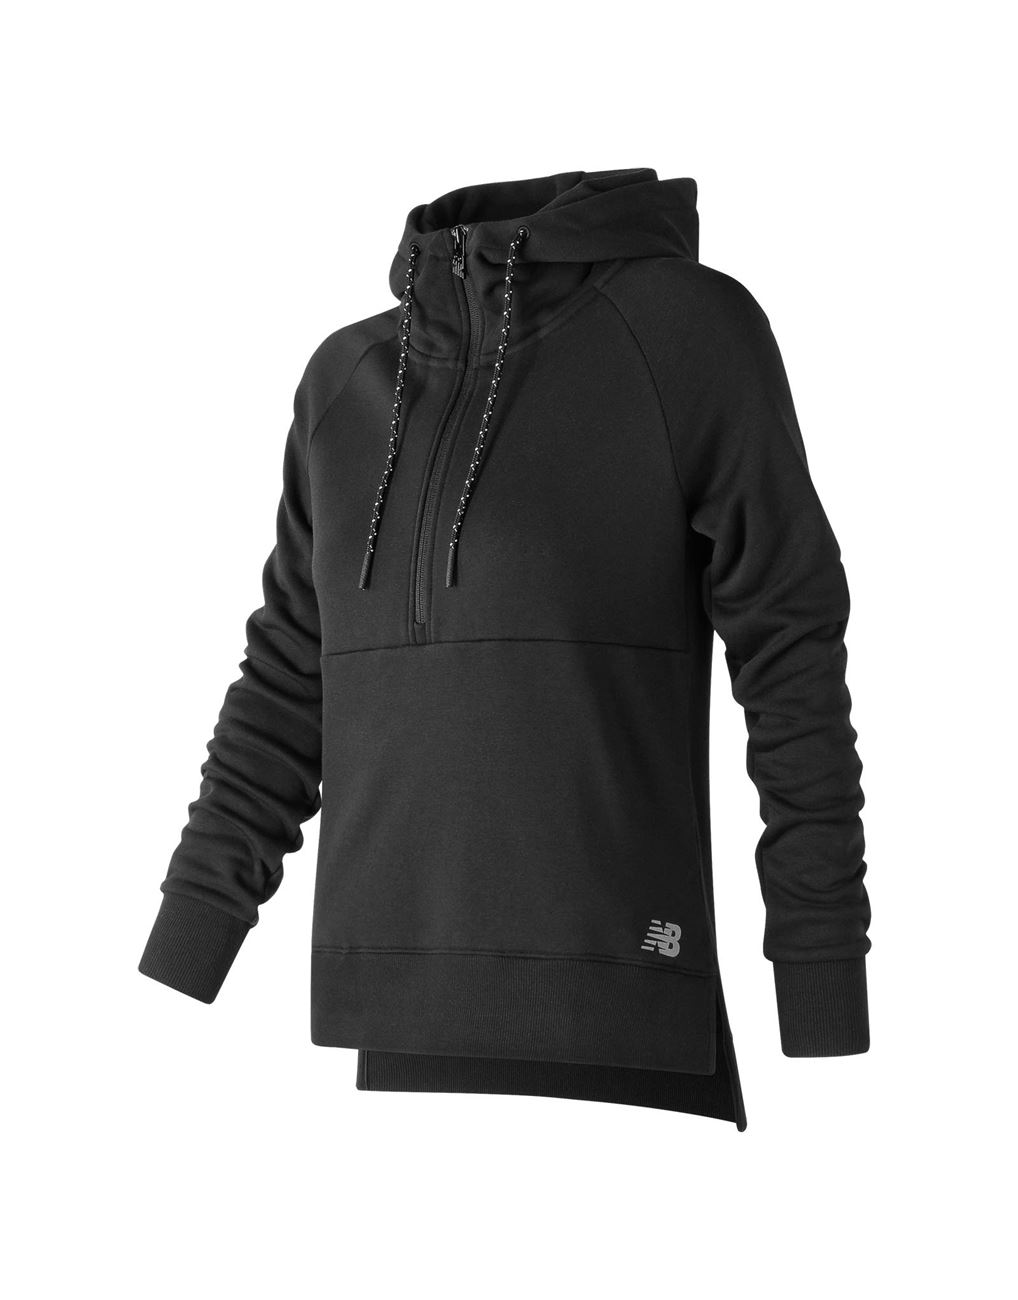 NB Athletics Half Zip Hoodie